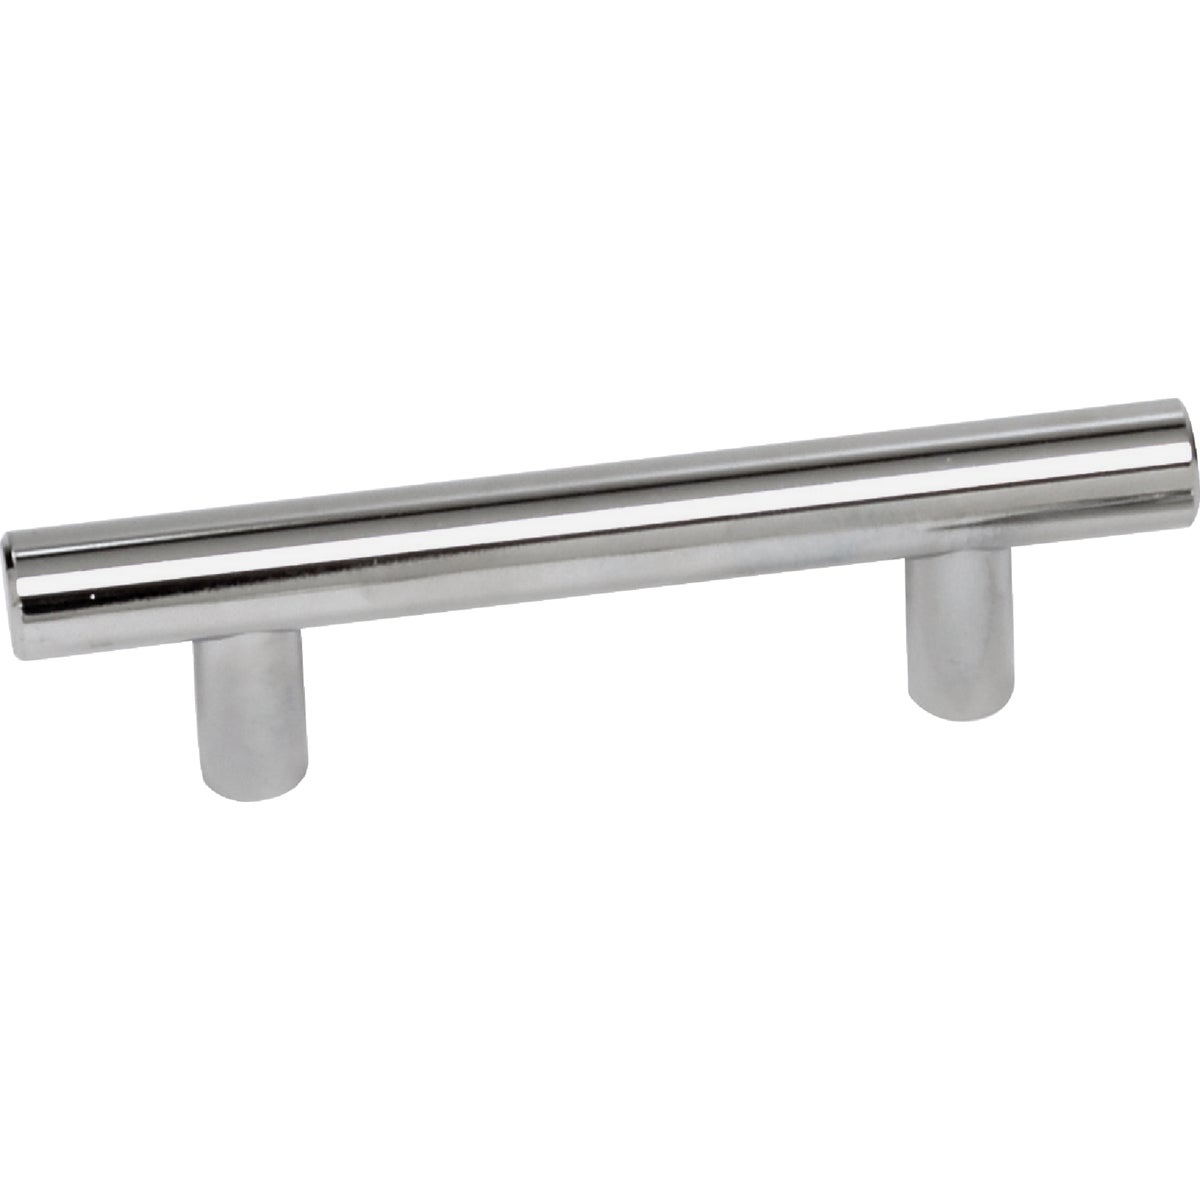 "3"" POLISHED CHROME PULL - 52926 by Laurey Co"